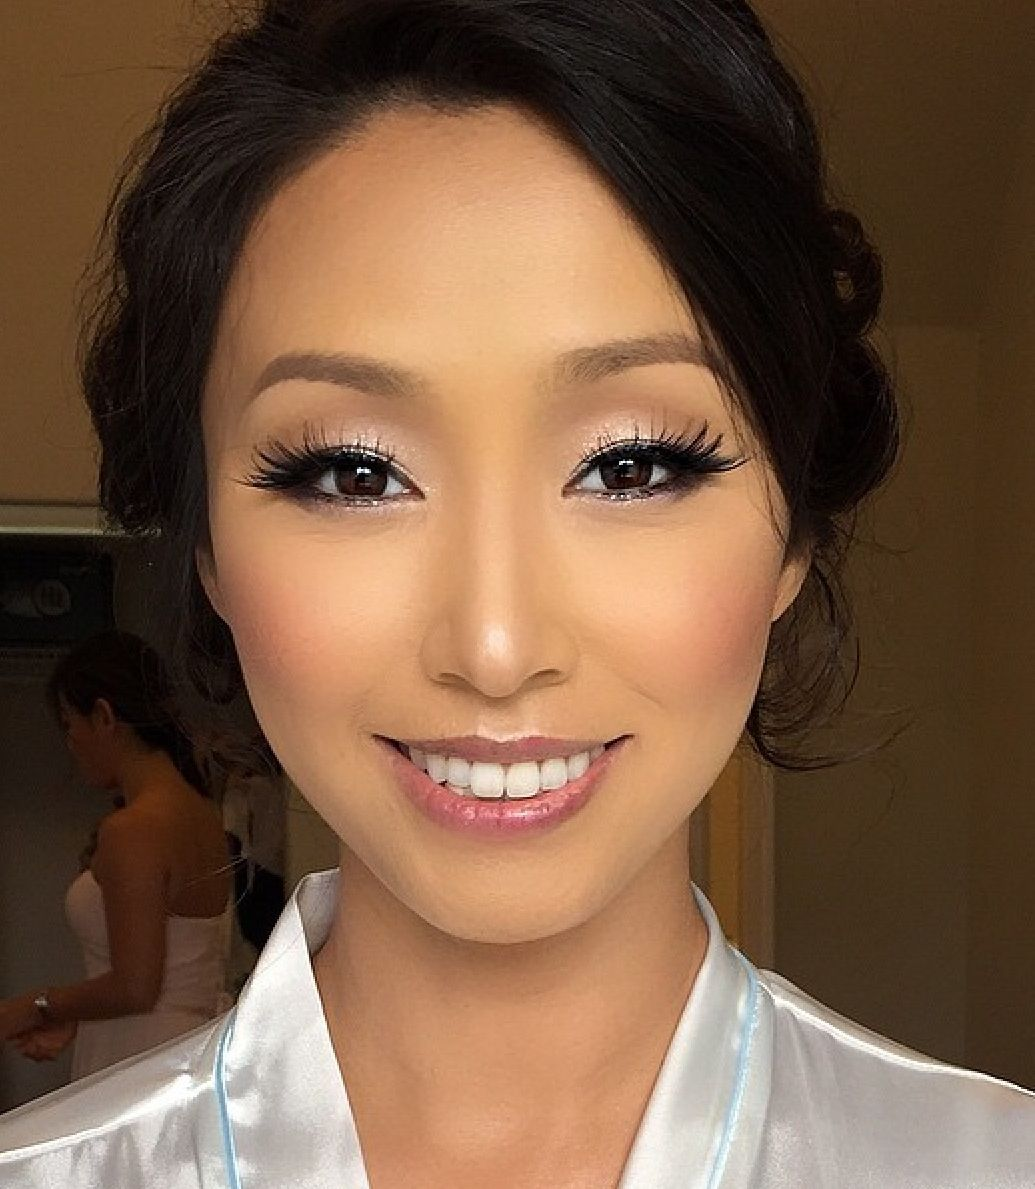 Asian glowy makeup | WakeUp 4 MakeUp | Pinterest | Glowy ...